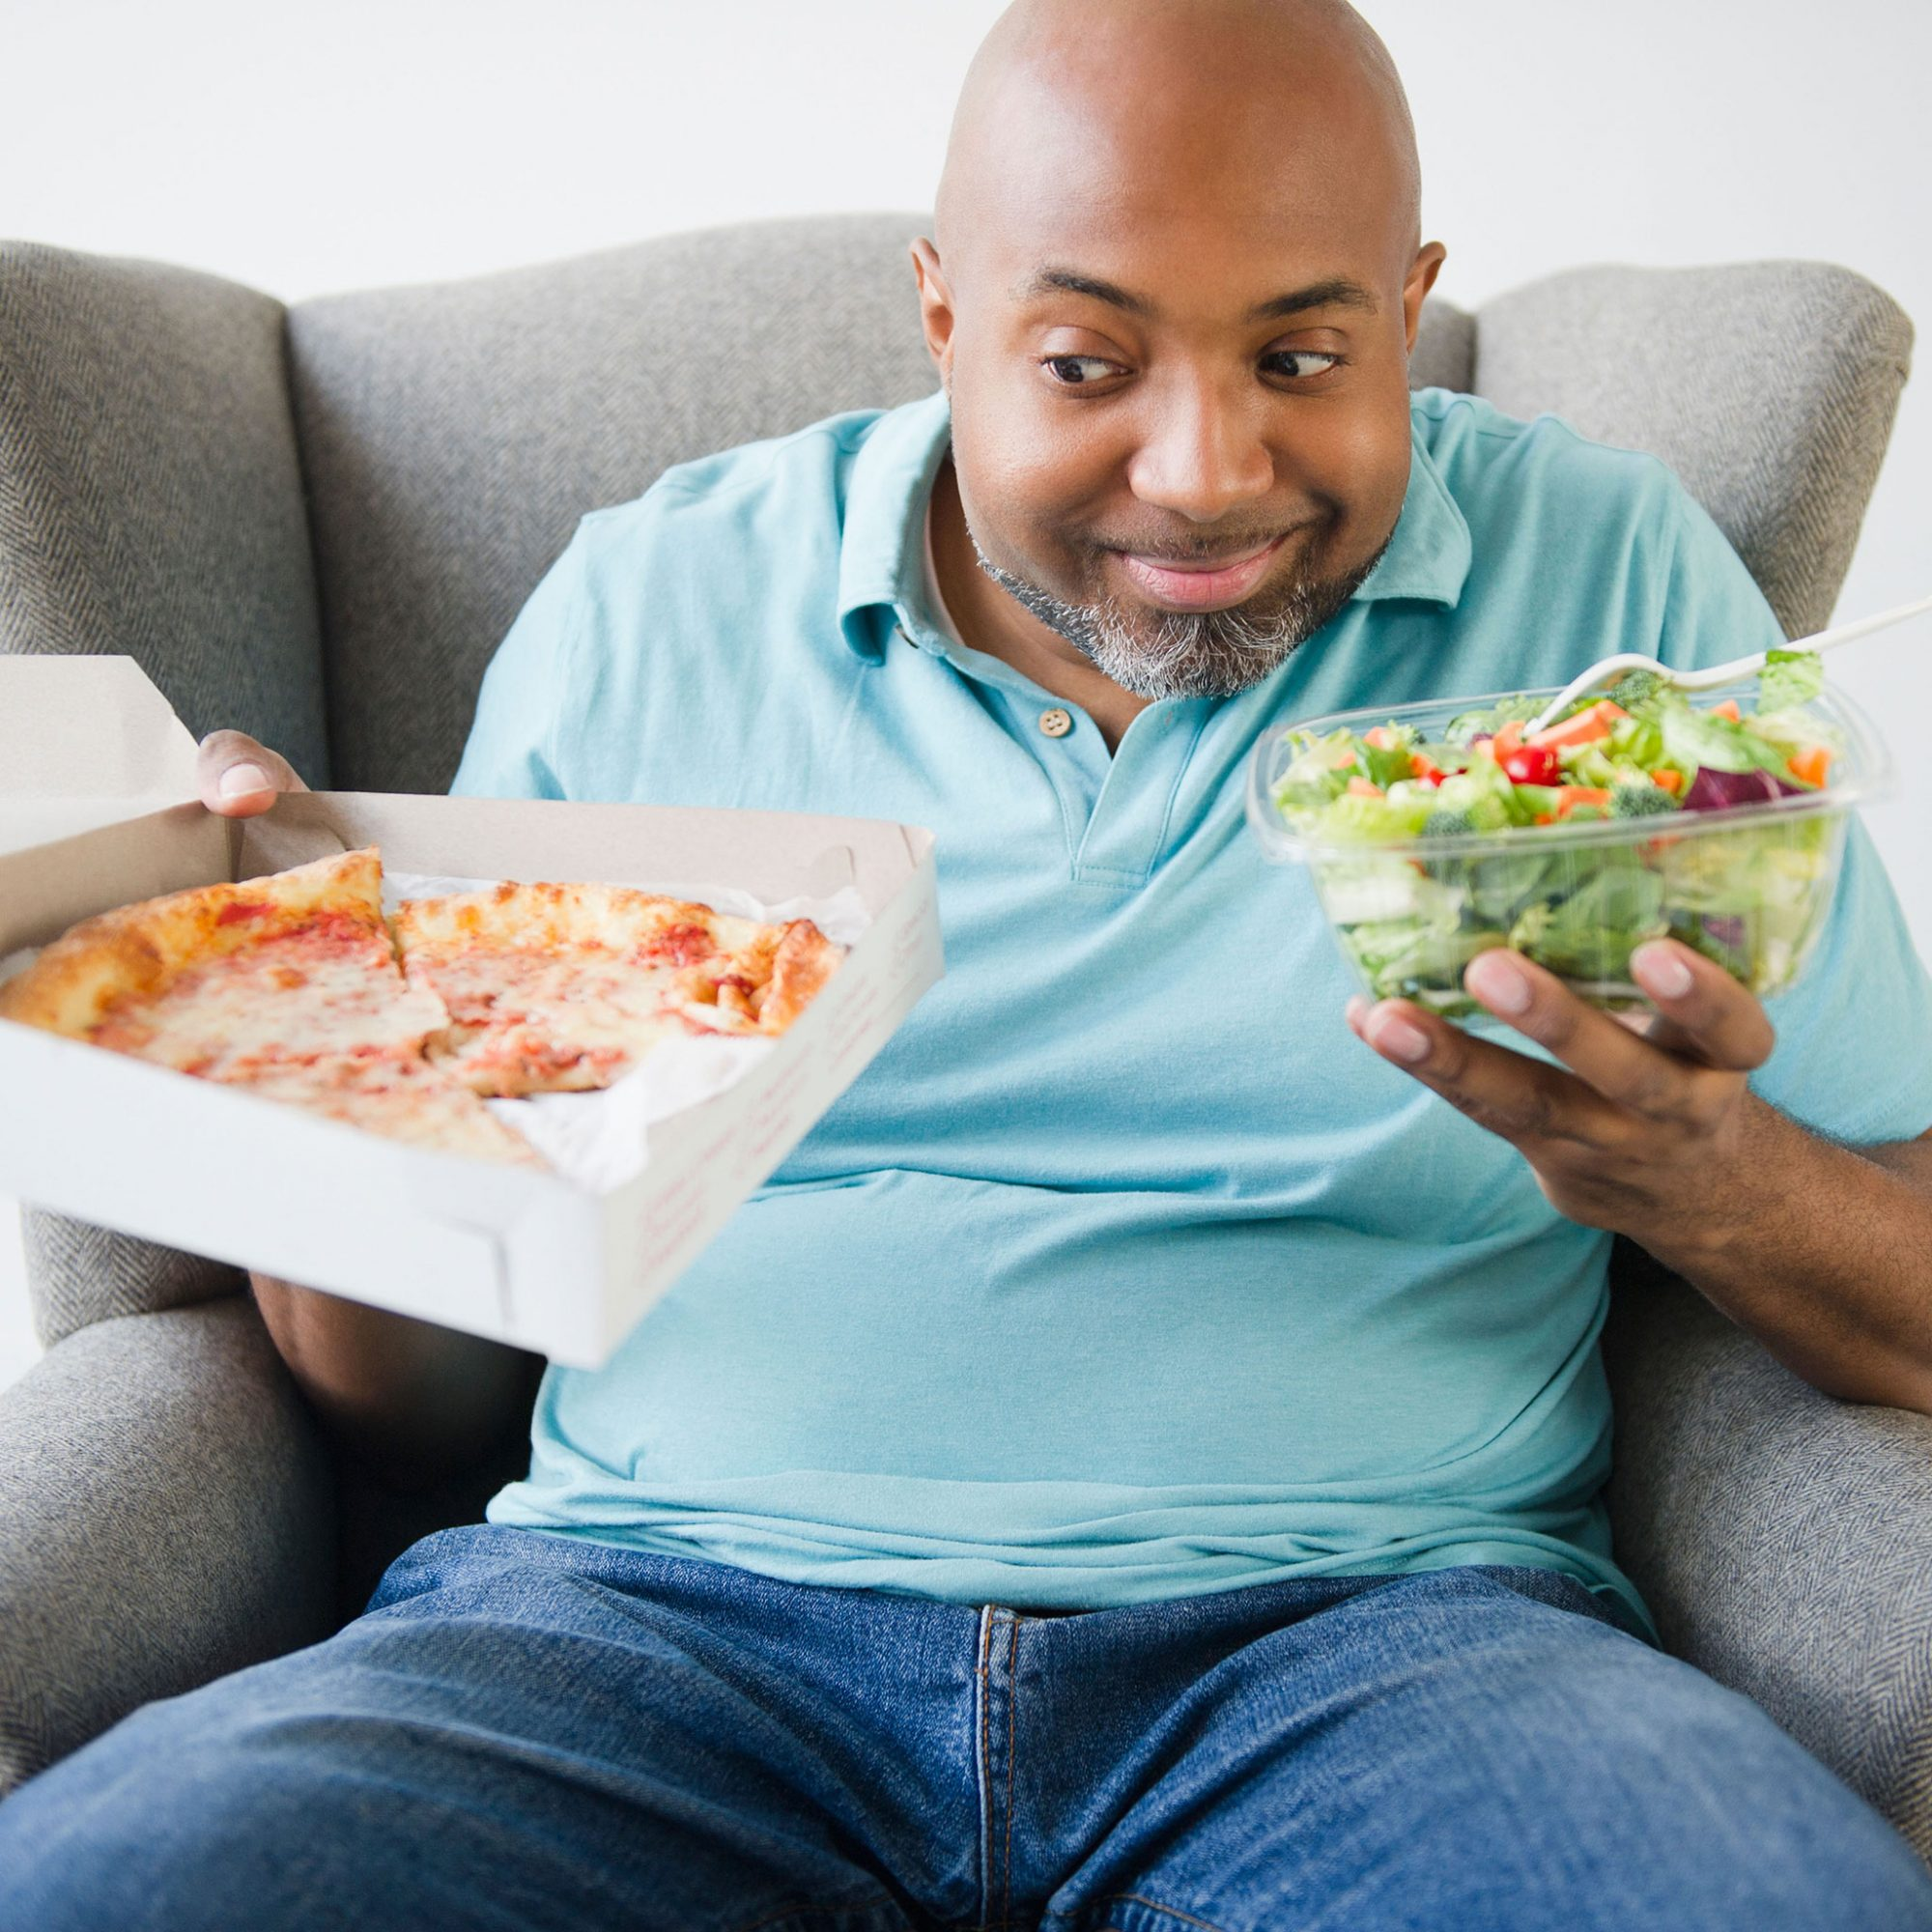 FWX WHAT YOUR DAD ATE CAN EFFECT YOU